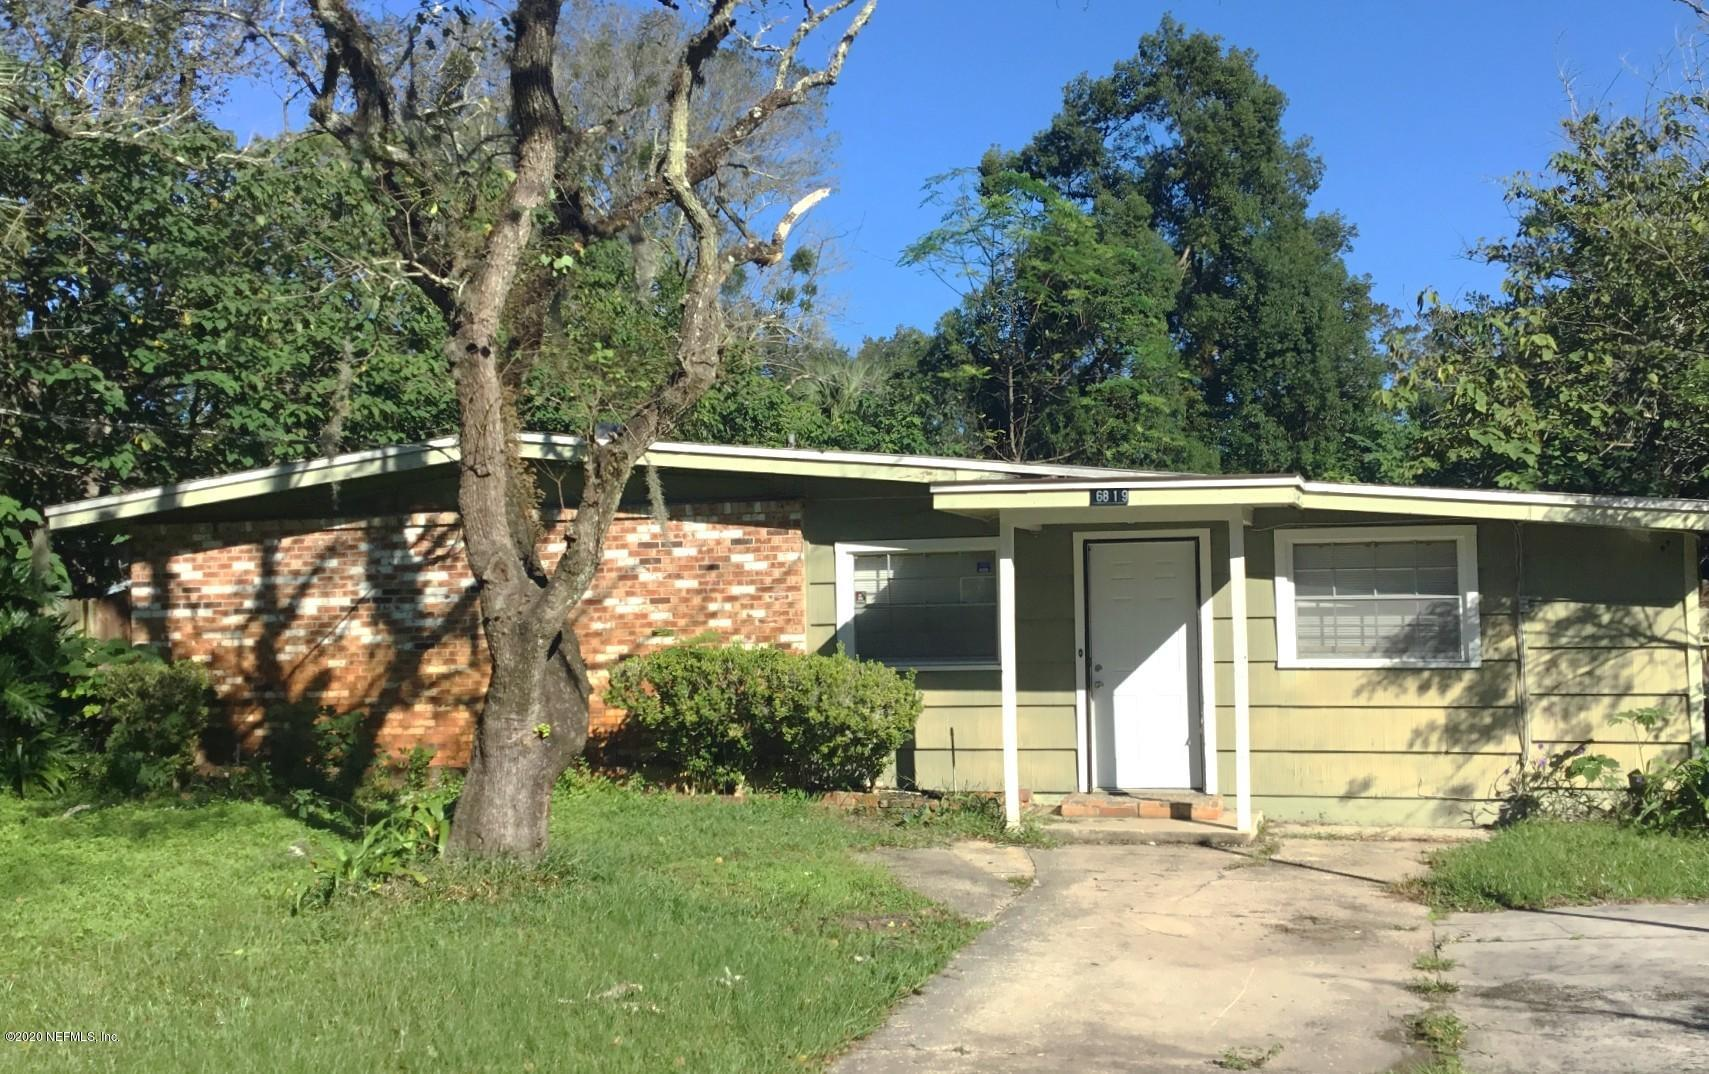 6819 GAILLARDIA, JACKSONVILLE, FLORIDA 32211, 3 Bedrooms Bedrooms, ,1 BathroomBathrooms,Rental,For Rent,GAILLARDIA,1082032